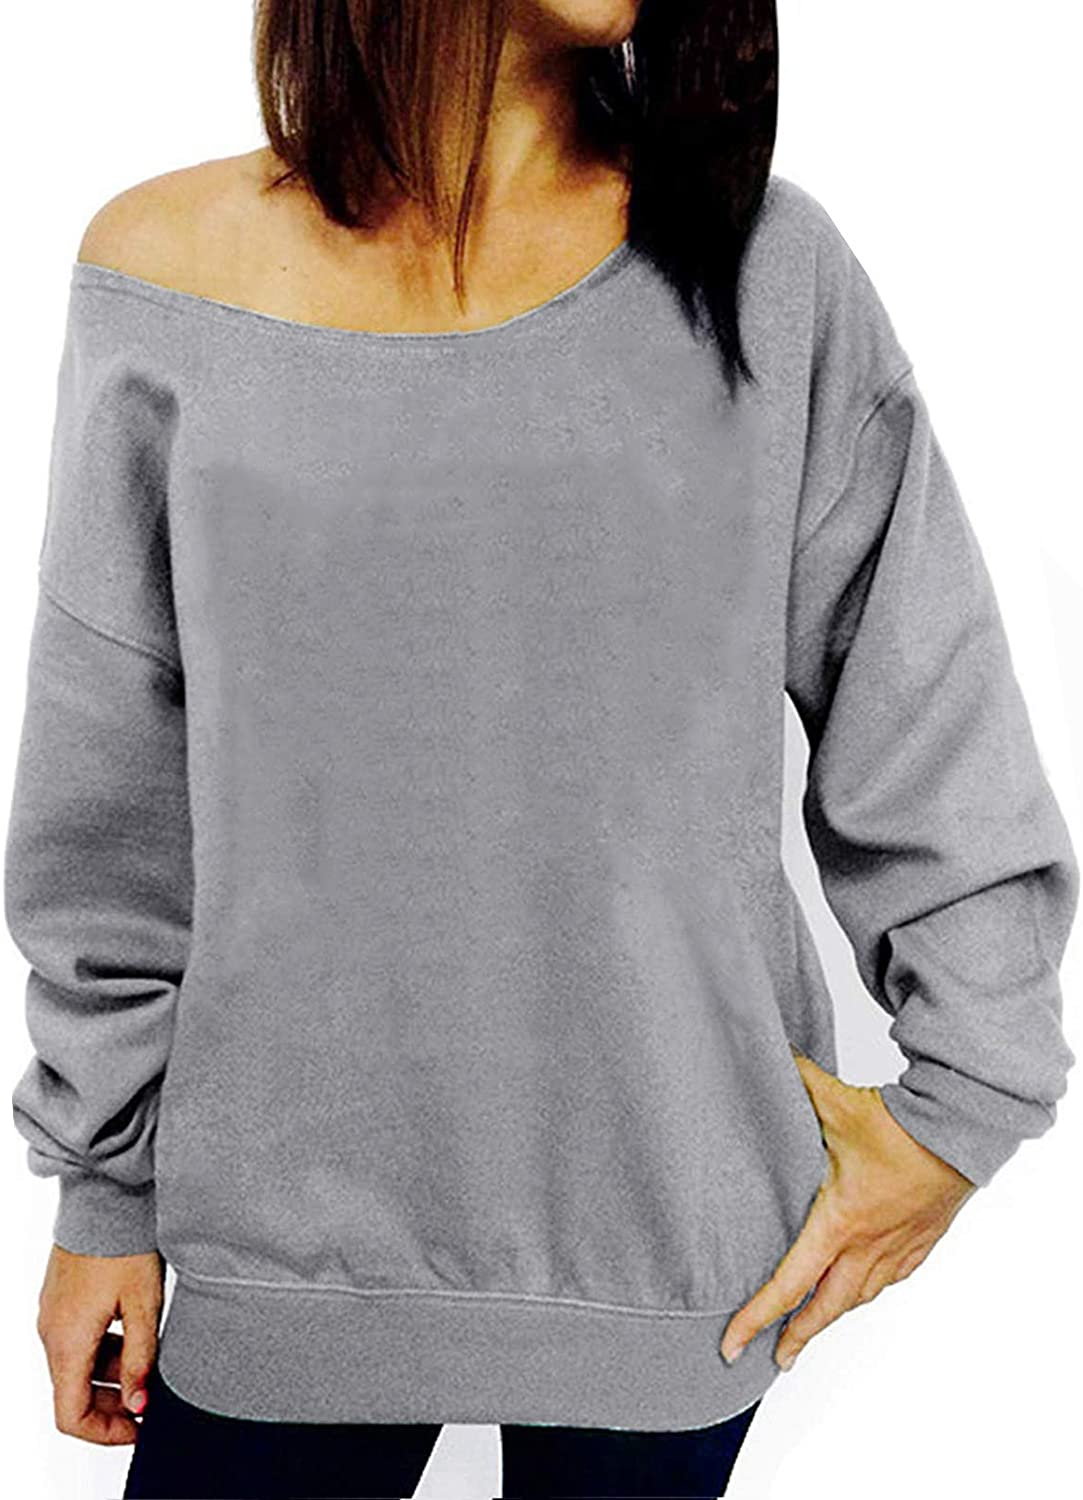 LYXIOF Womens Off Shoulder Sweatshirt Slouchy Long Sleeve Shirts Pullover Tops